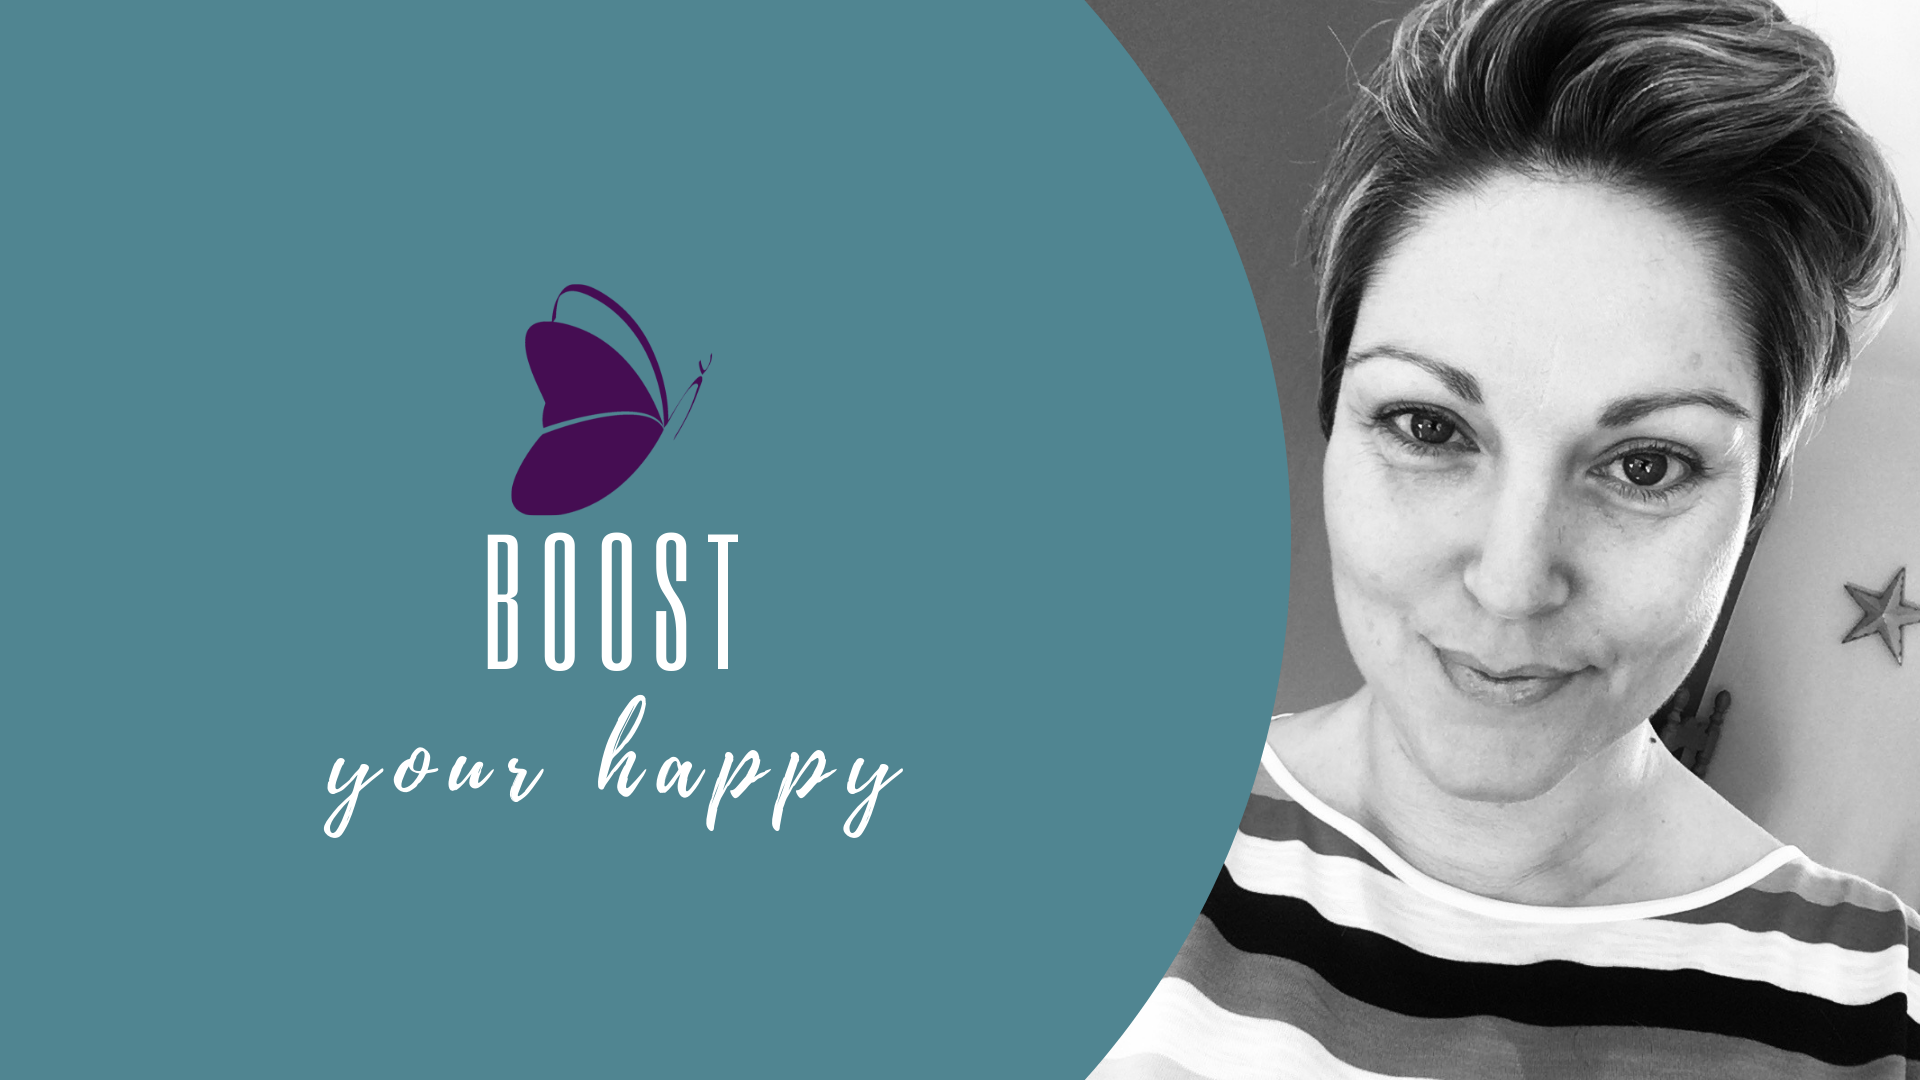 Boost your happy coaching emma lannigan